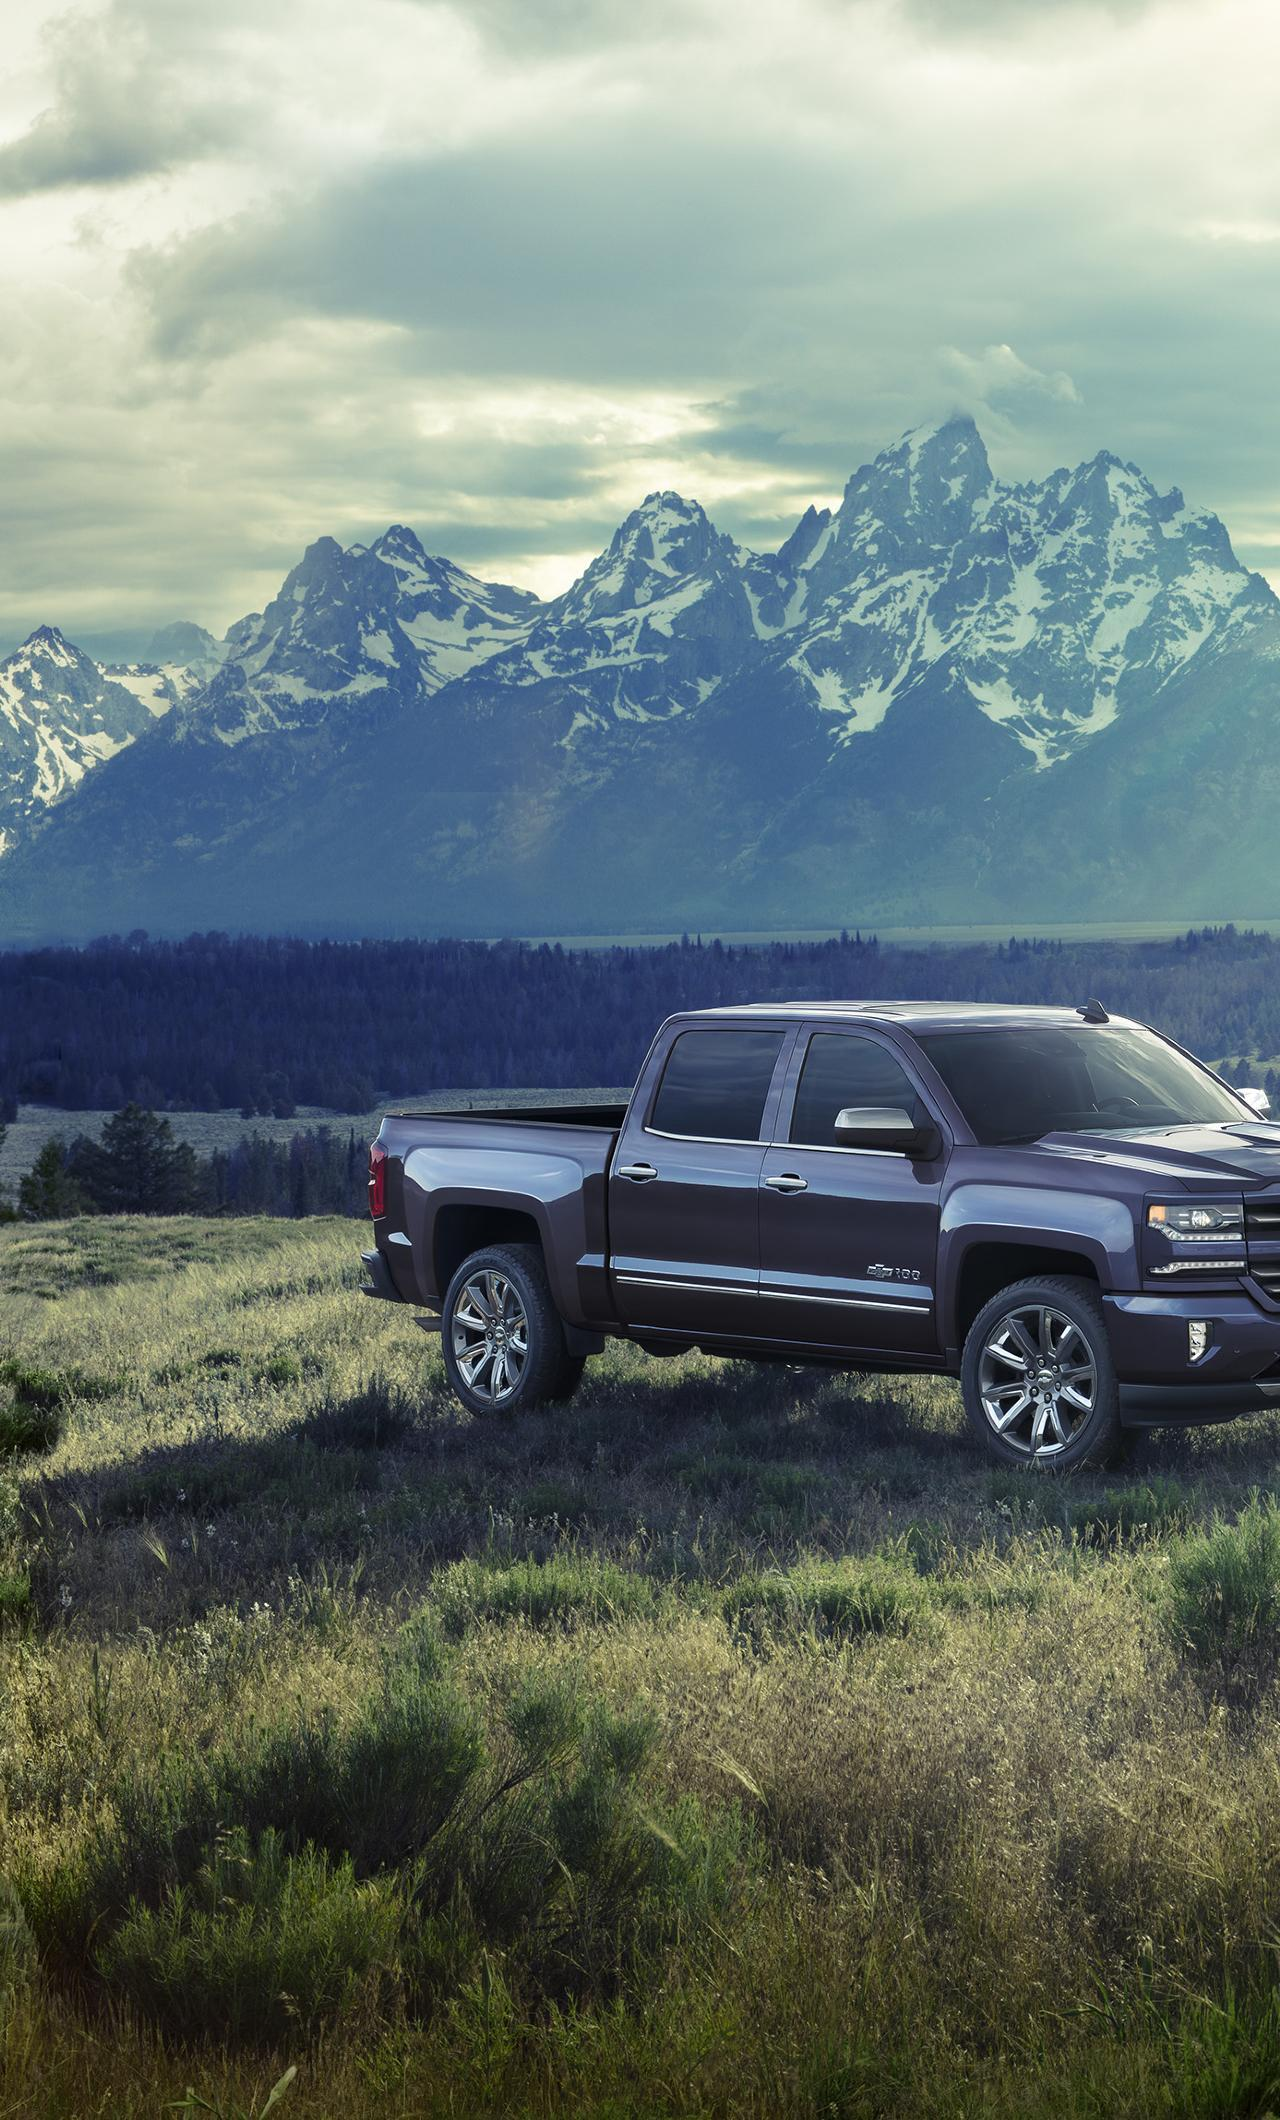 2020 Chevy Truck Wallpapers Wallpaper Cave